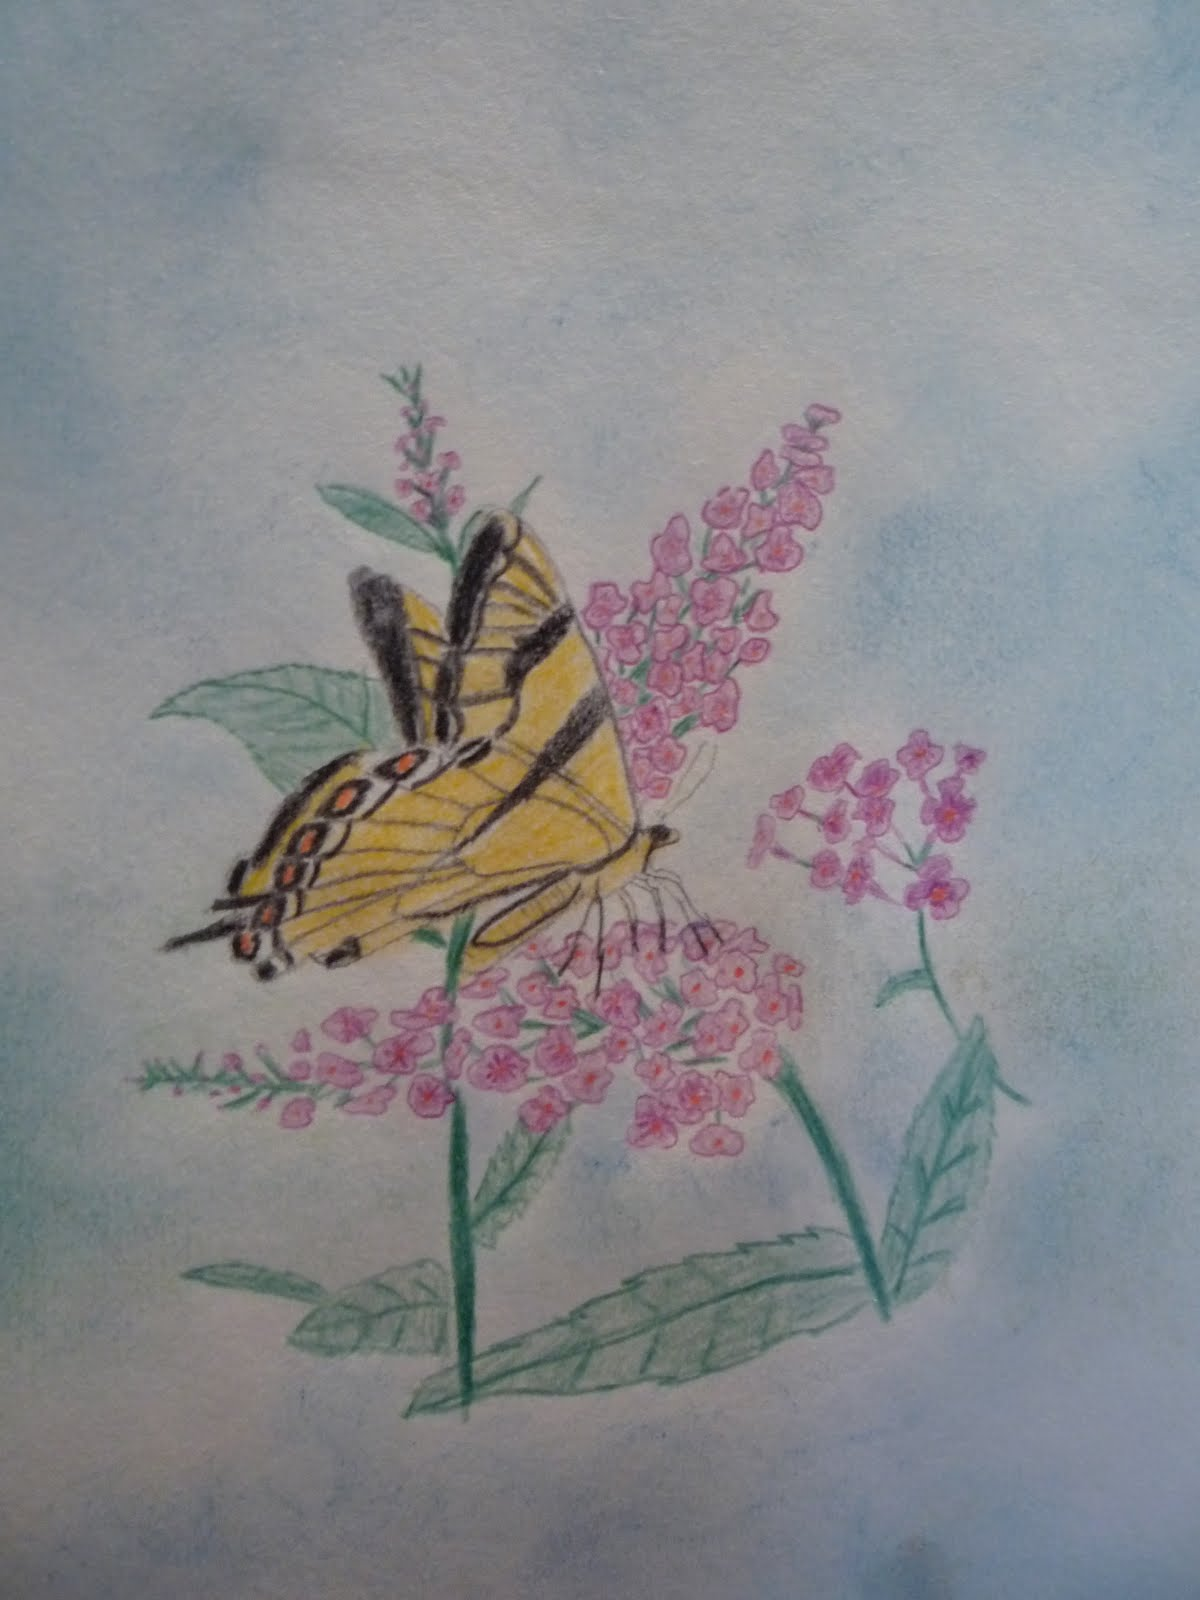 Her Sketching Is Becoming Quite Lovely And She Enjoys The Use Of Color Pencils As Well Watercolor Preferred Mediums